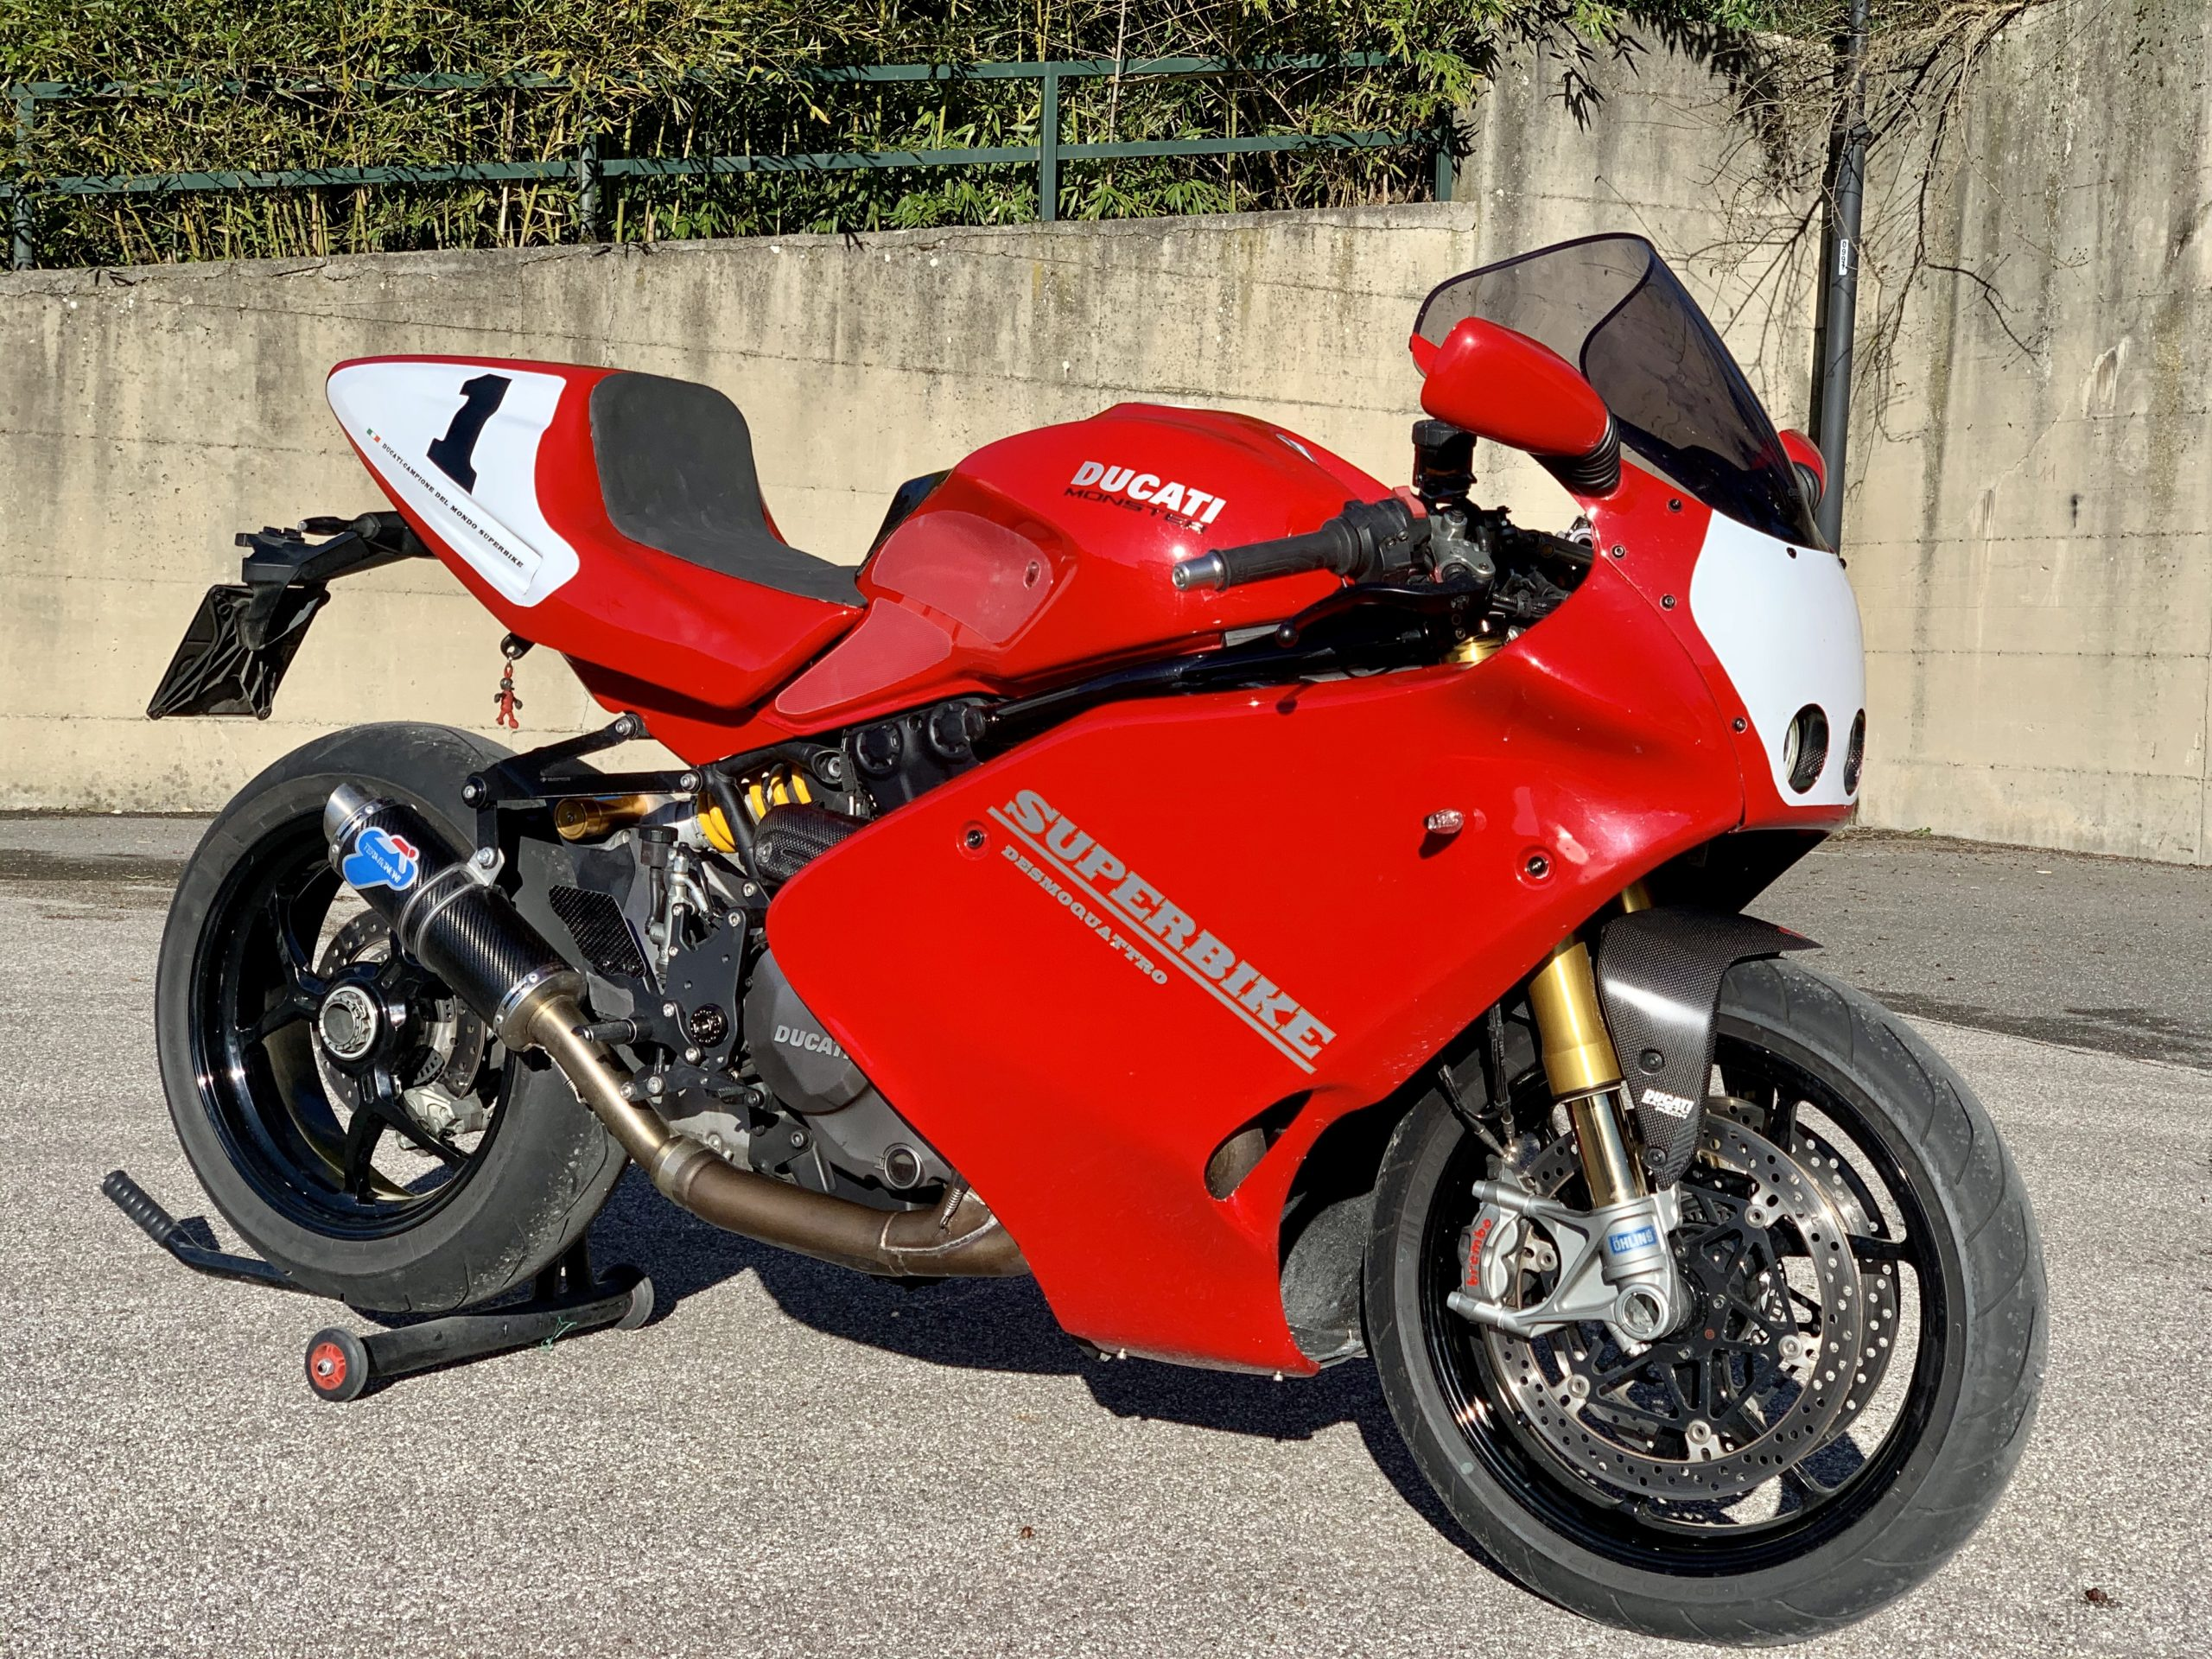 Custom Ducati Monster mixed with Ducati 900SS